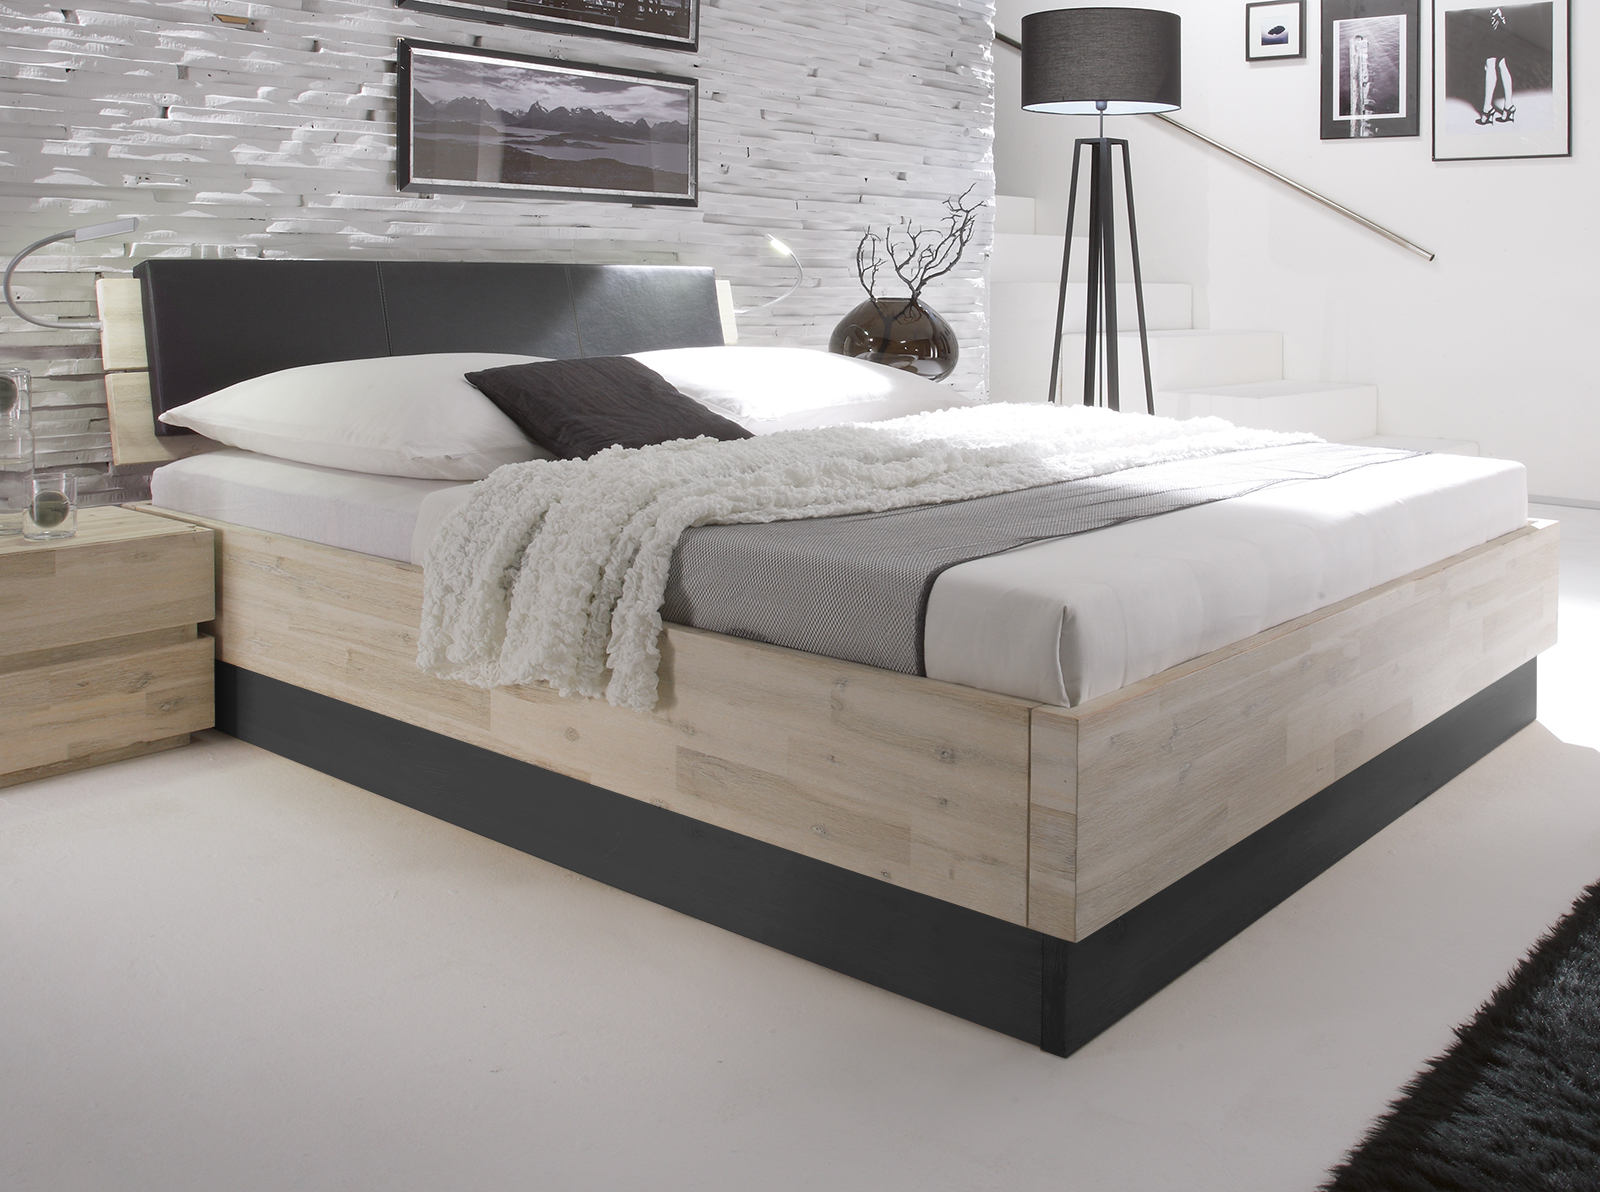 bett holz wei lackiert verschiedene ideen f r die. Black Bedroom Furniture Sets. Home Design Ideas